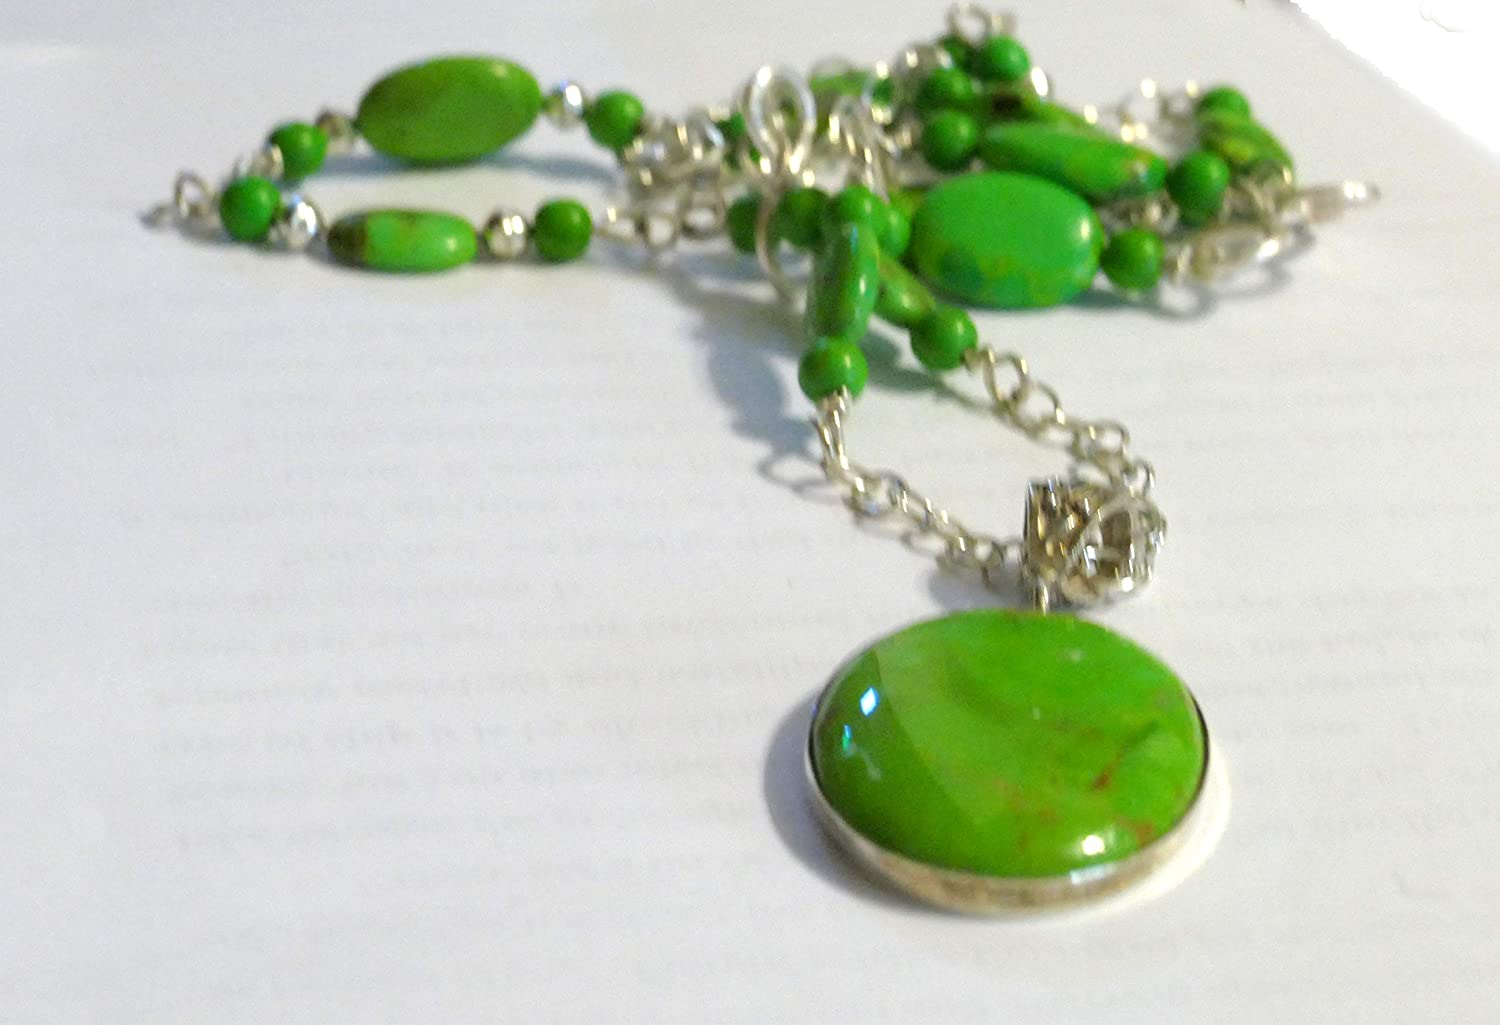 Gemstone Necklace and Earrings Green Turquoise Sterling Silver Jewelry Set